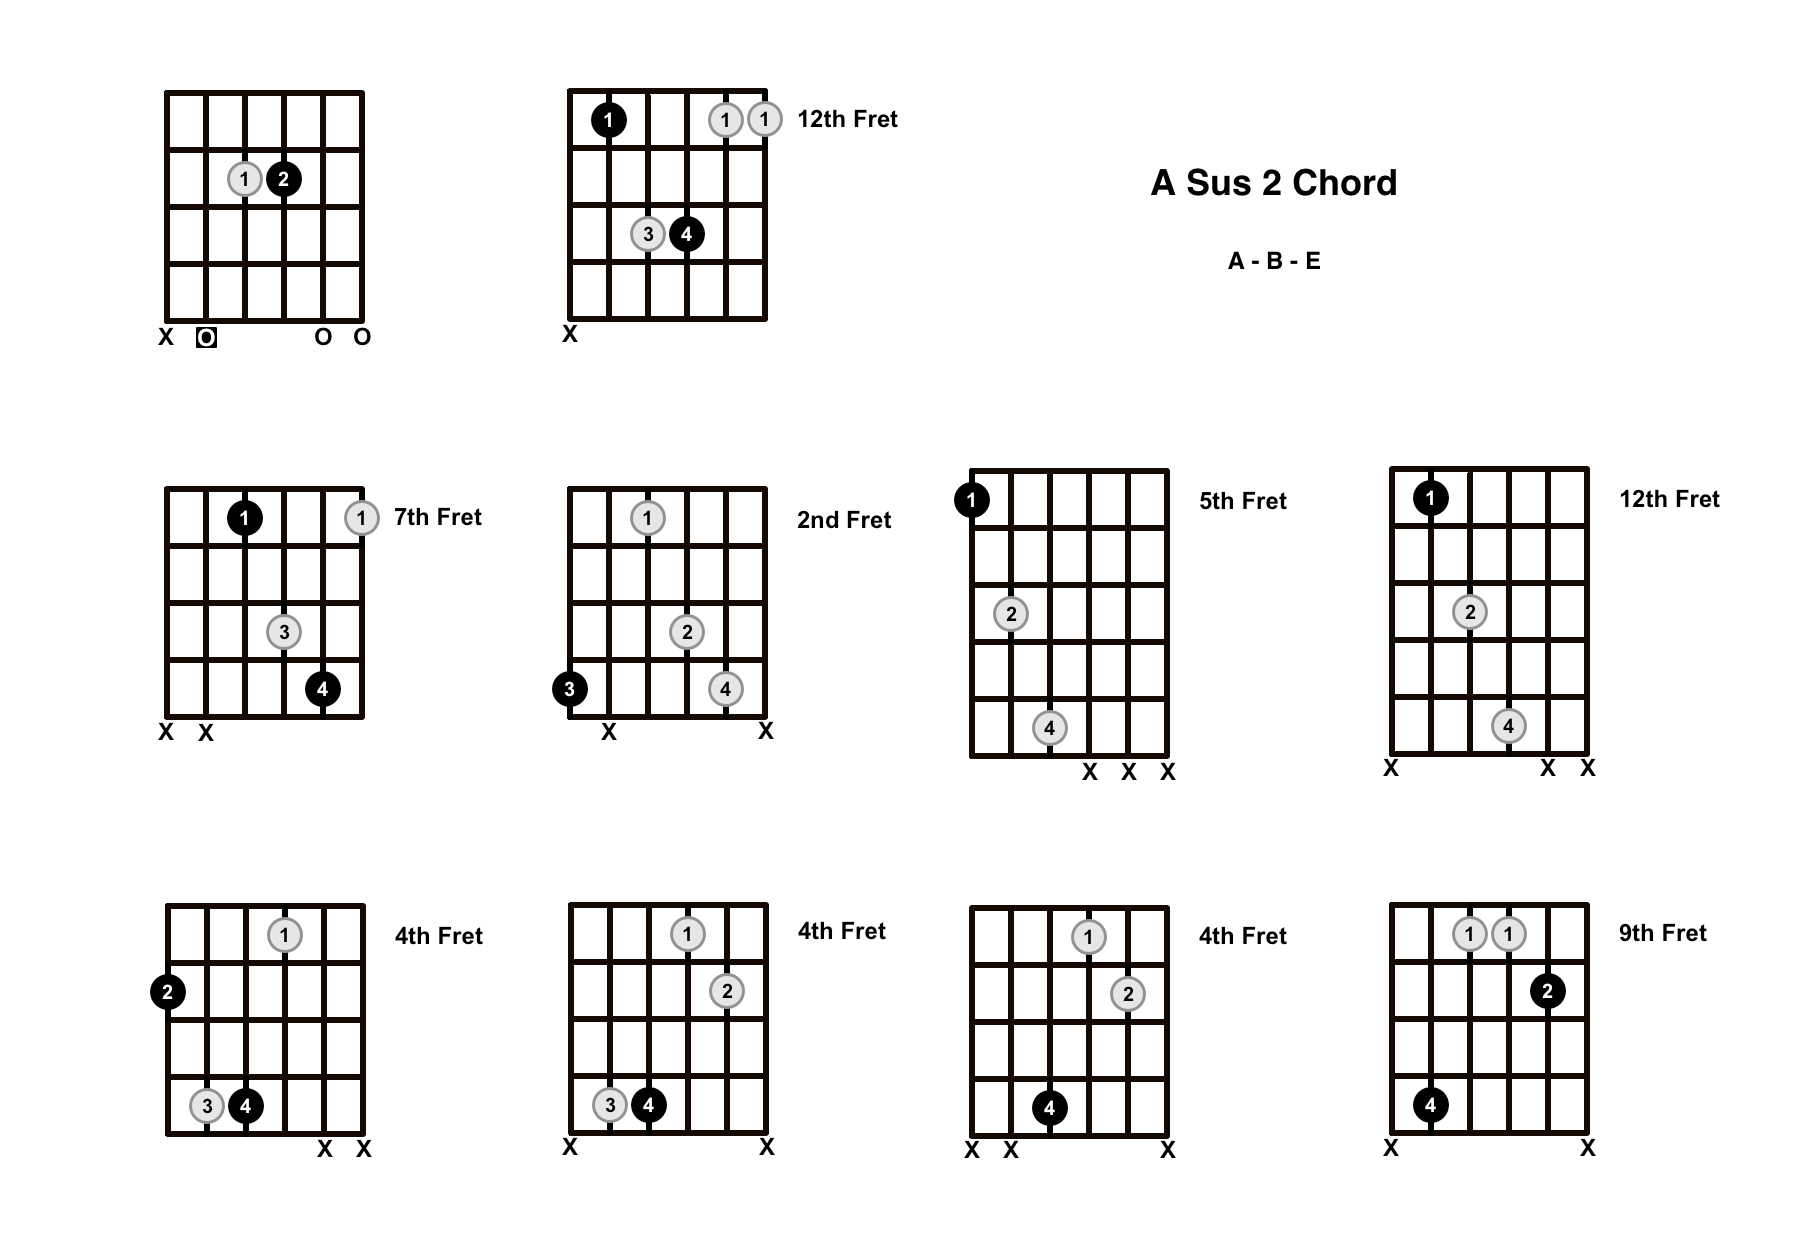 A Sus 2 Chord On The Guitar (A Suspended 2) – Diagrams, Finger Positions and Theory